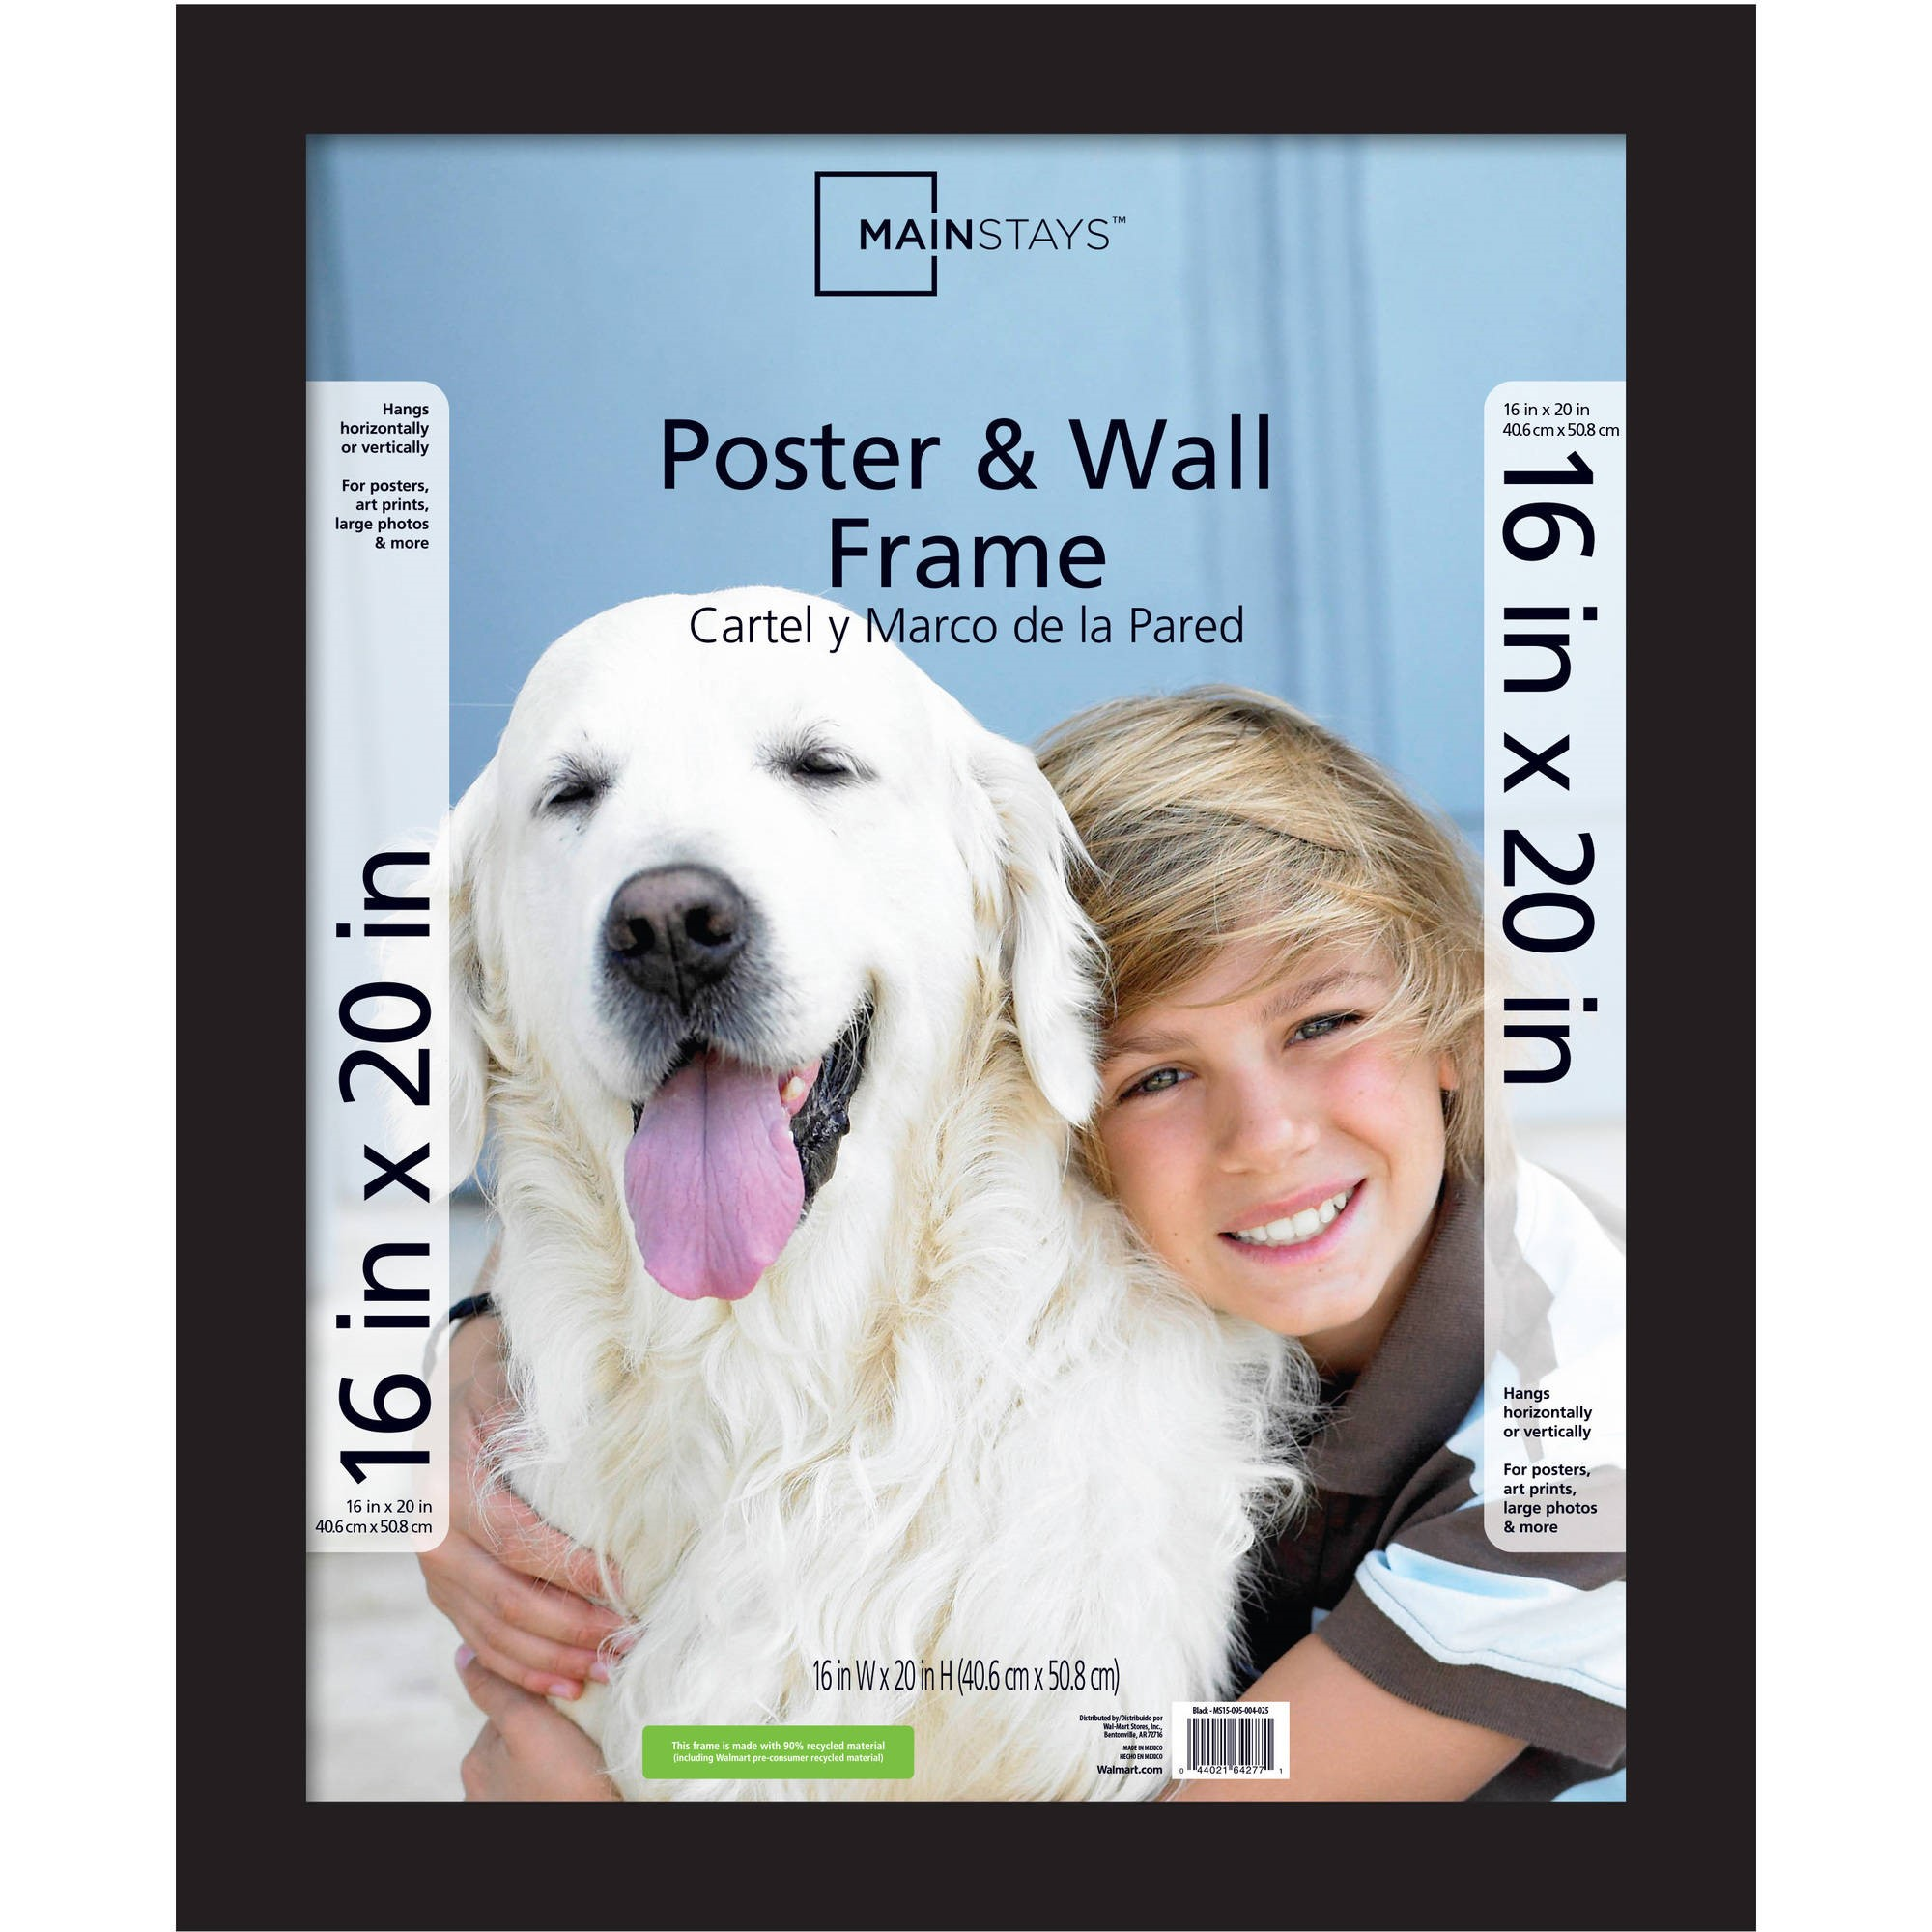 Mainstays 16x20 Wide Gallery Poster and Picture Frame, Black by MAINSTAYS